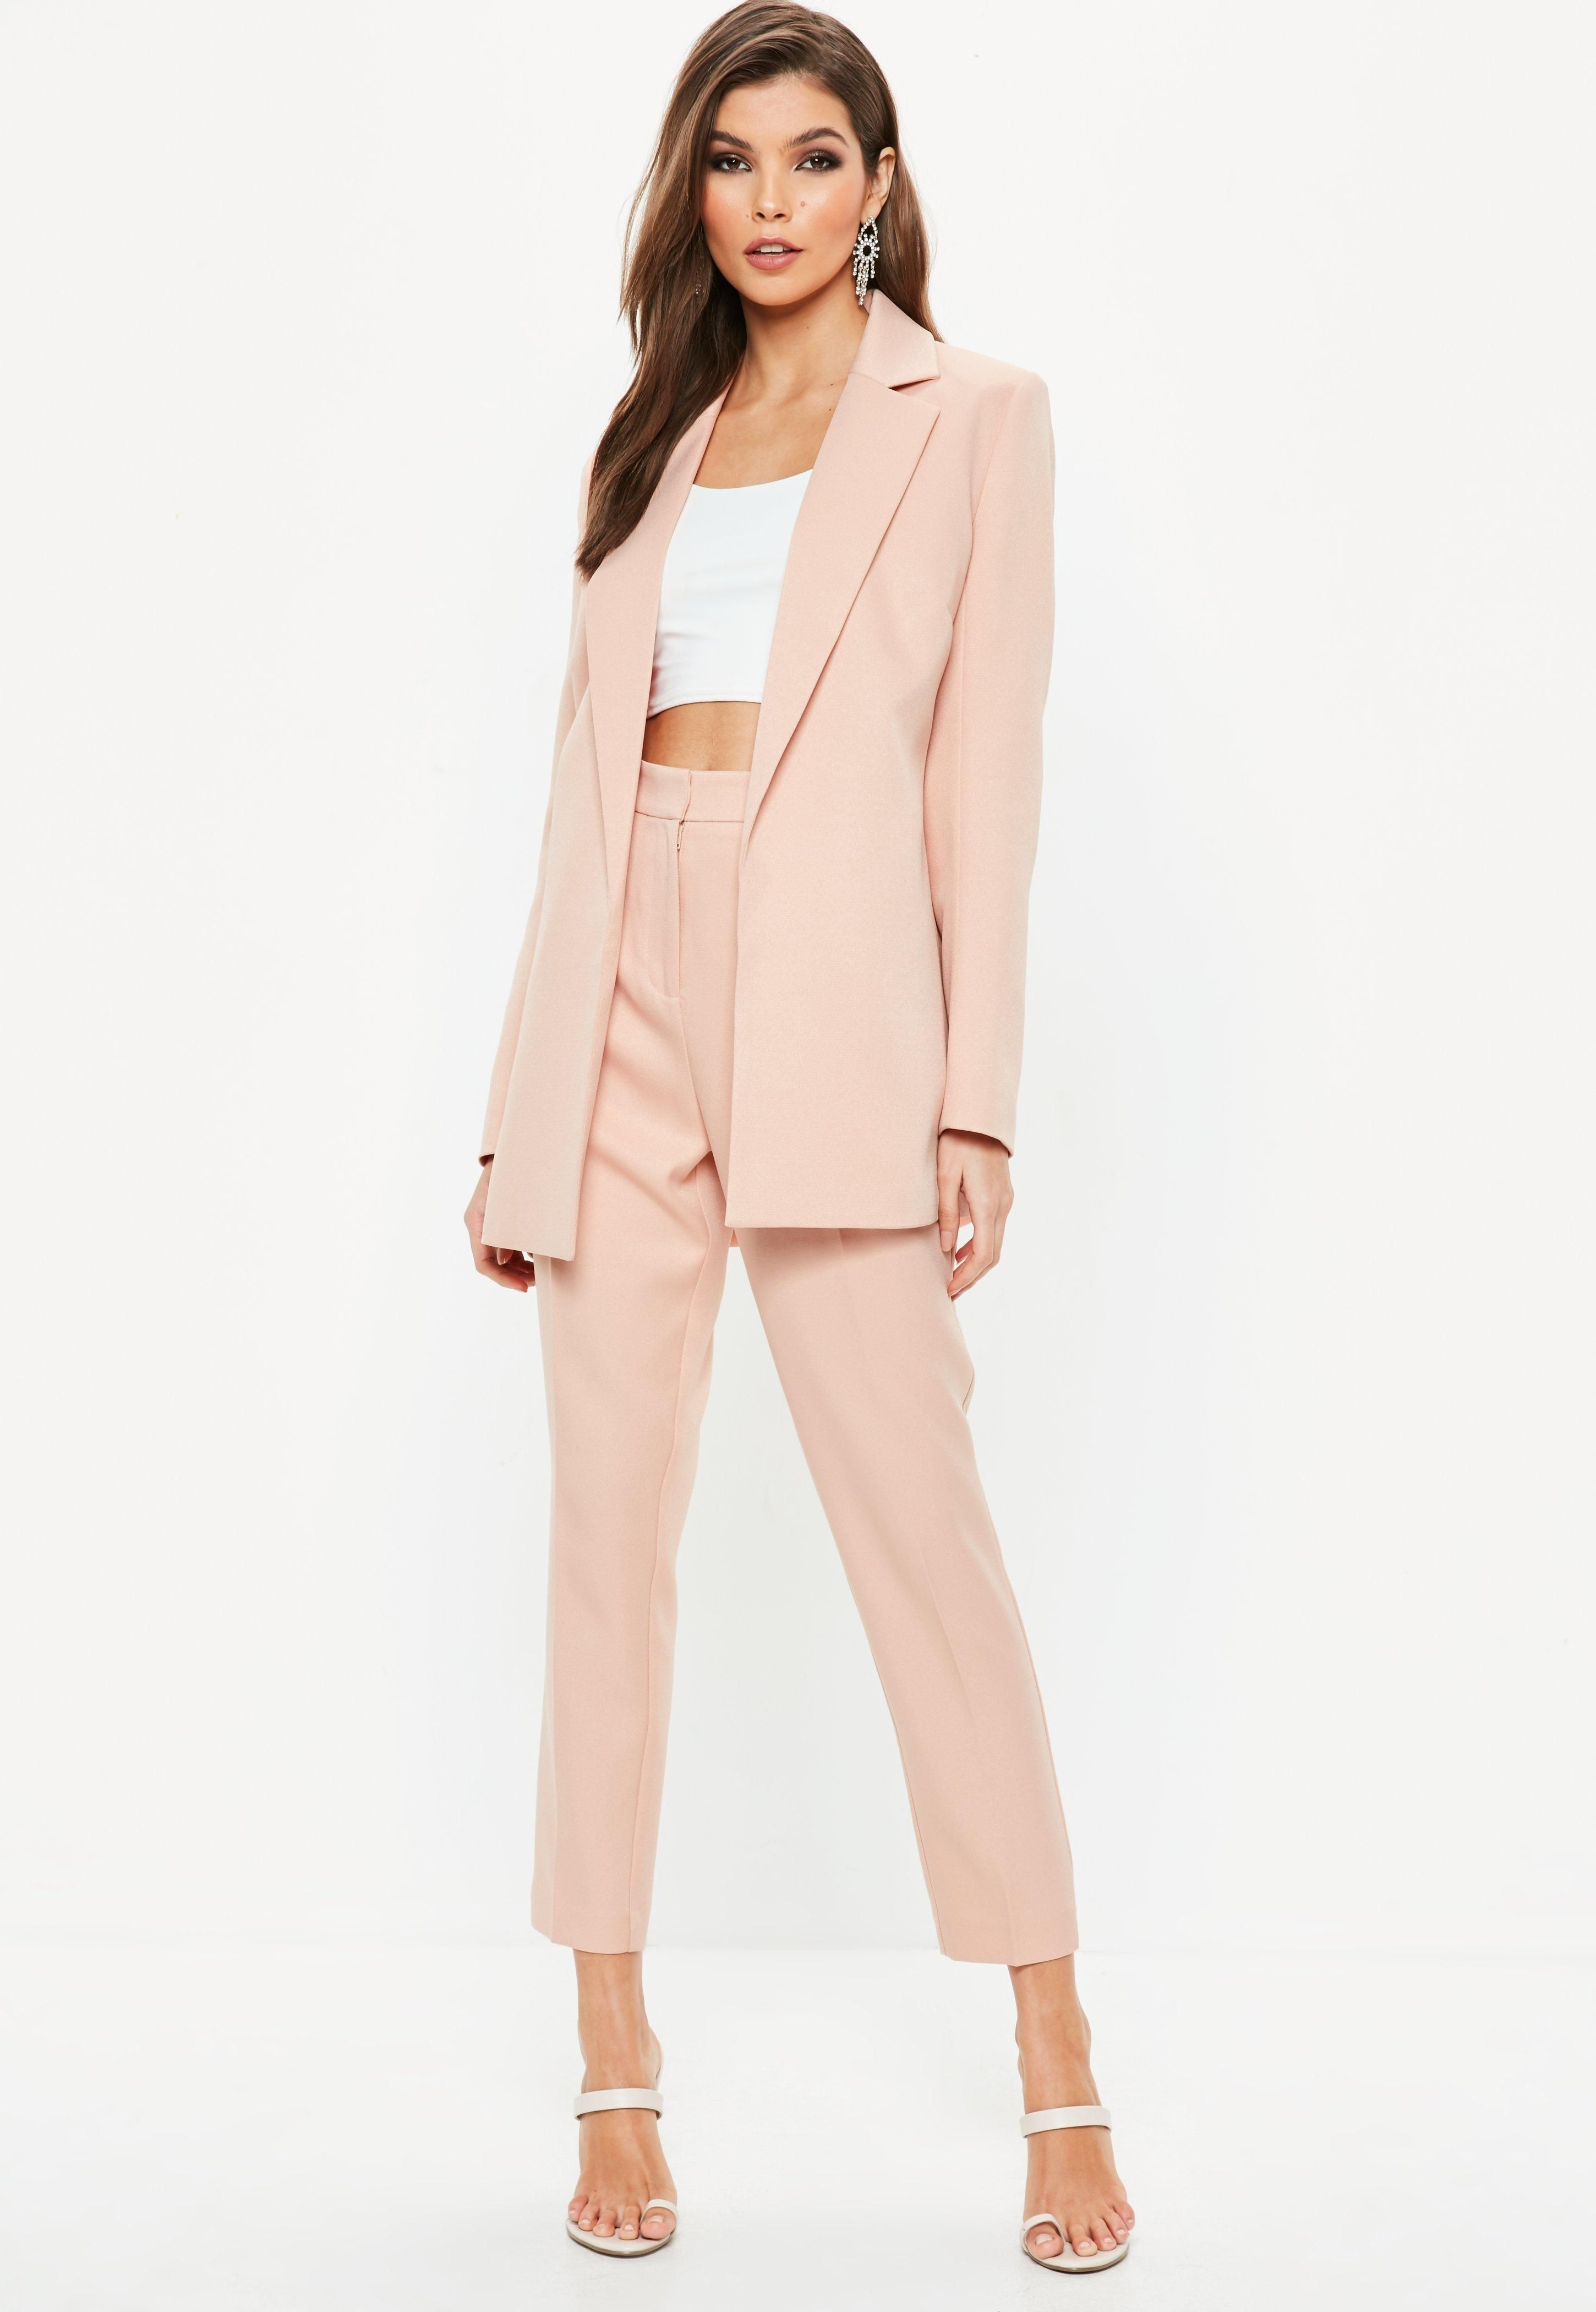 62895fac6a3 Missguided ---- Blazers